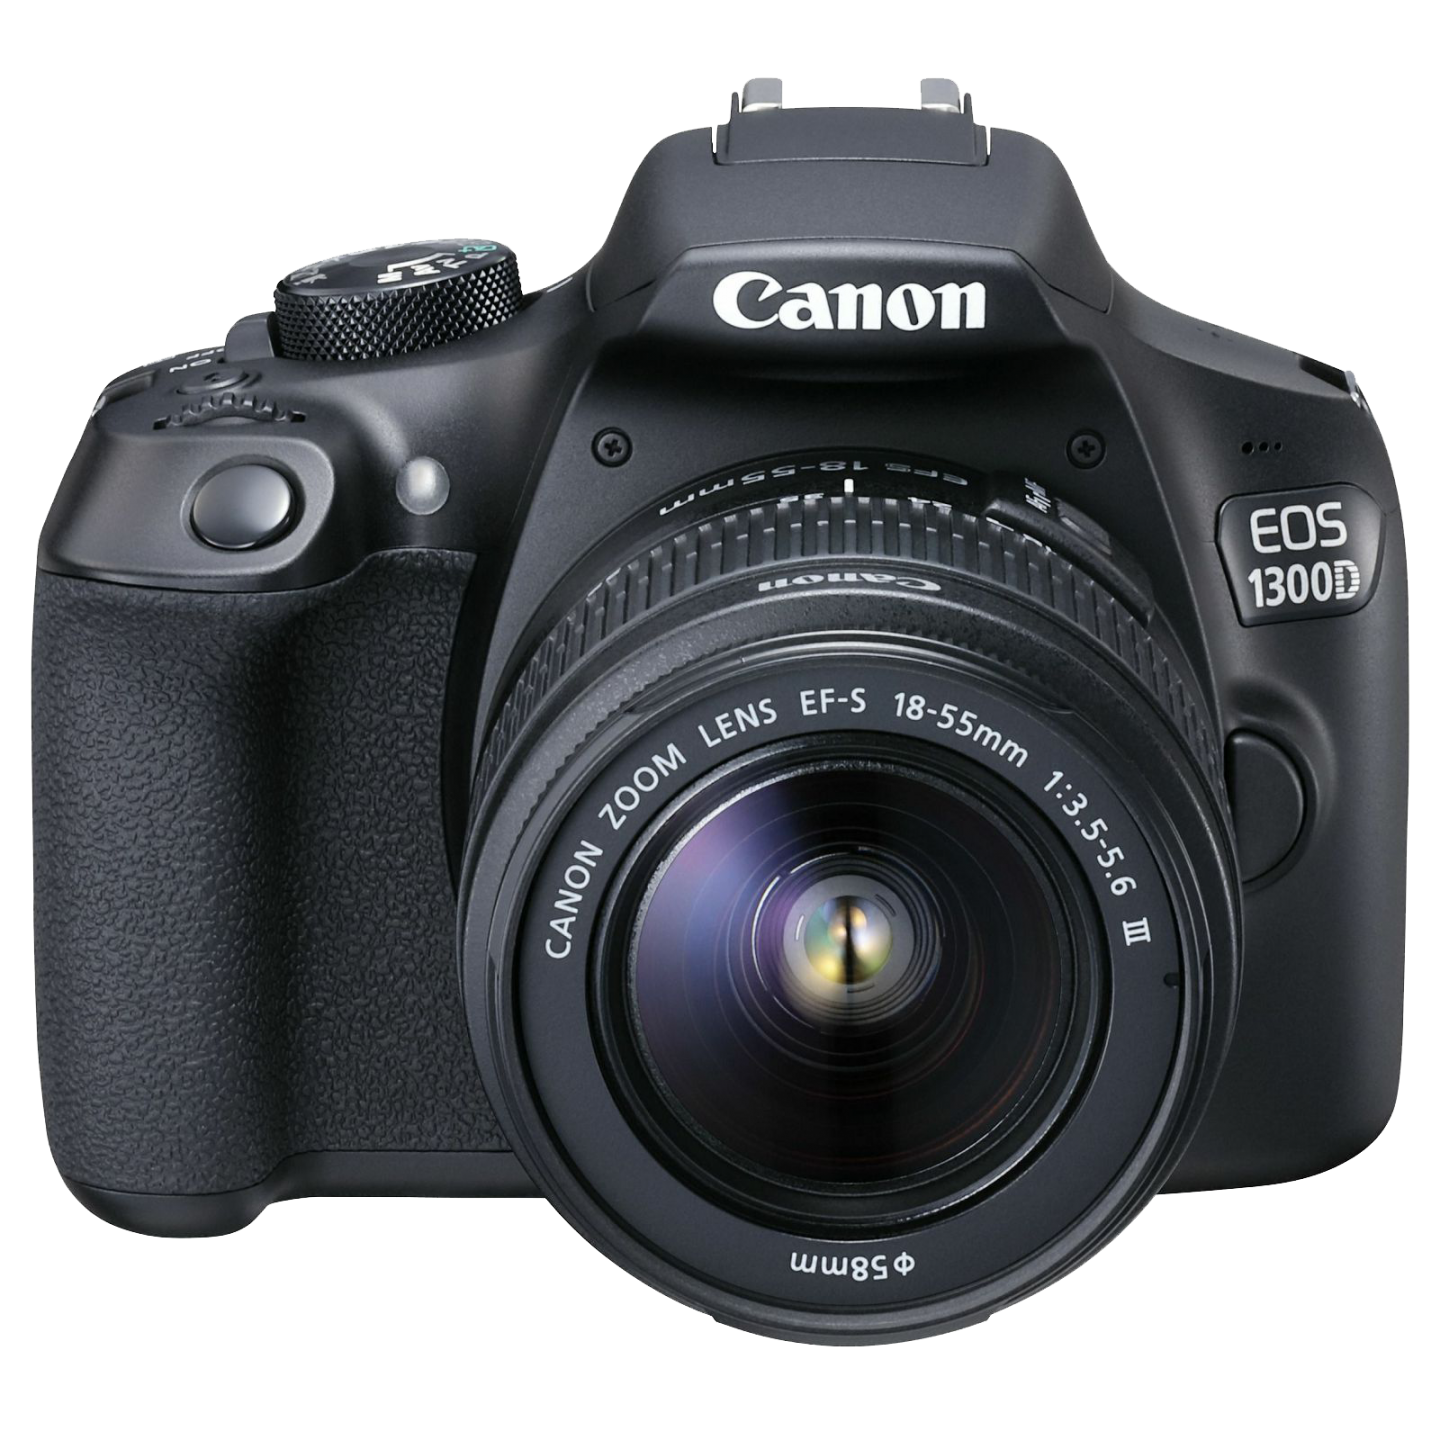 Mays Star Buy – Canon EOS 1300D